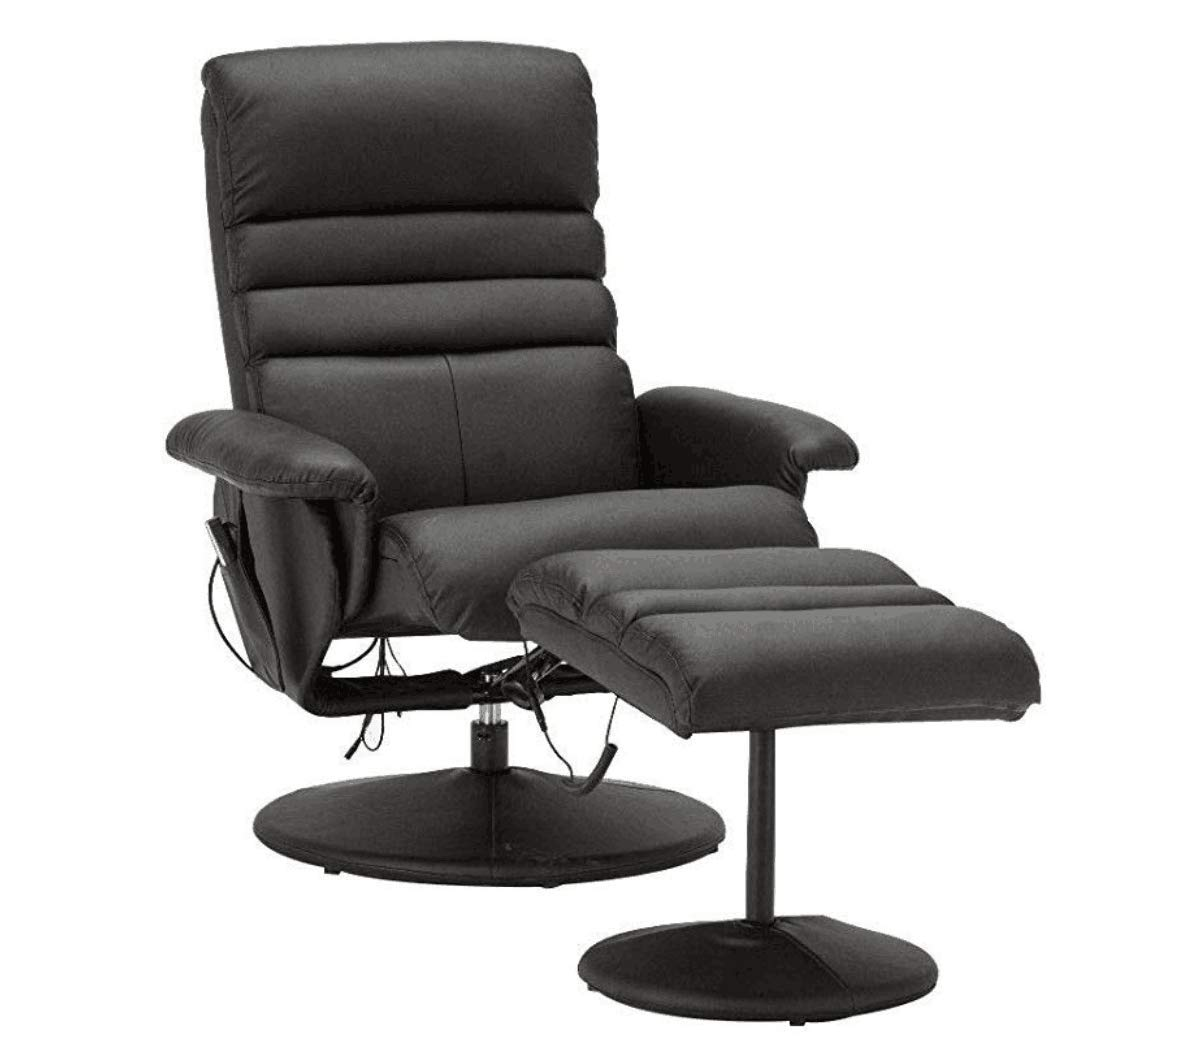 Mcombo Electric Faux Leather Recliner Chair and Ottoman Swivel Gaming Massage Chair with Wrapped Base Remote Control, Swivel Seat 7902 (Black)